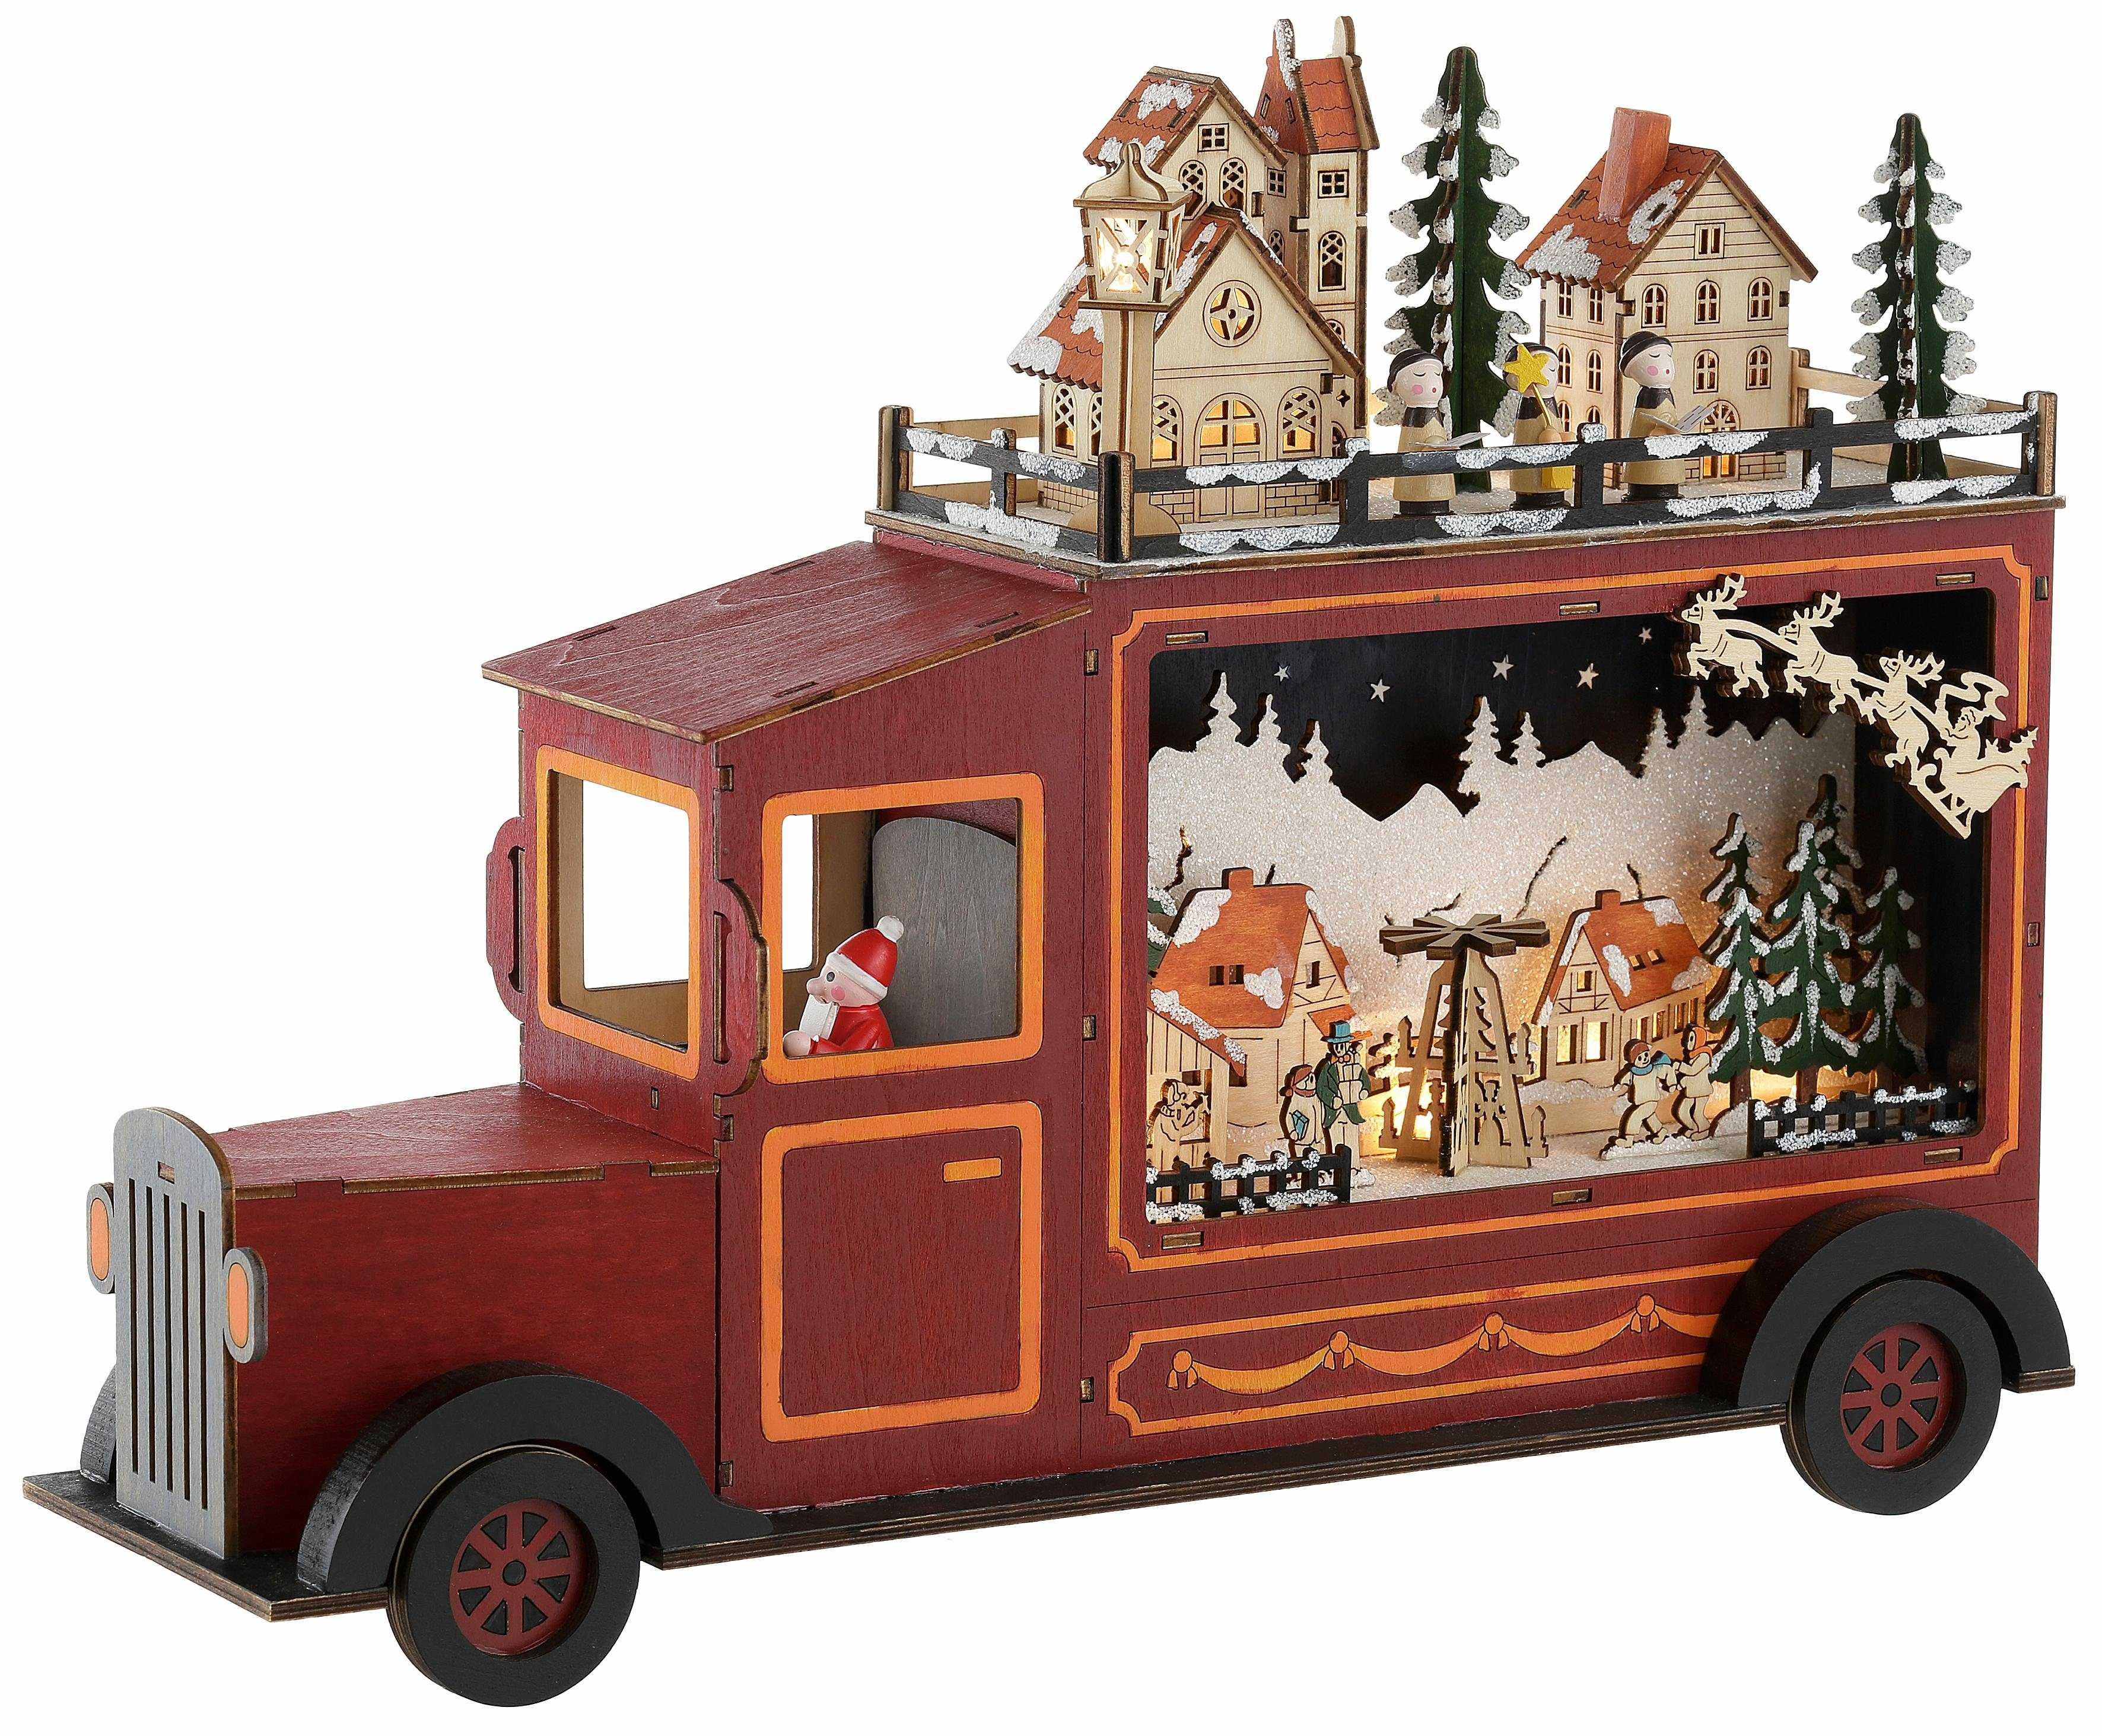 Santa-Truck mit LED-Beleuchtung